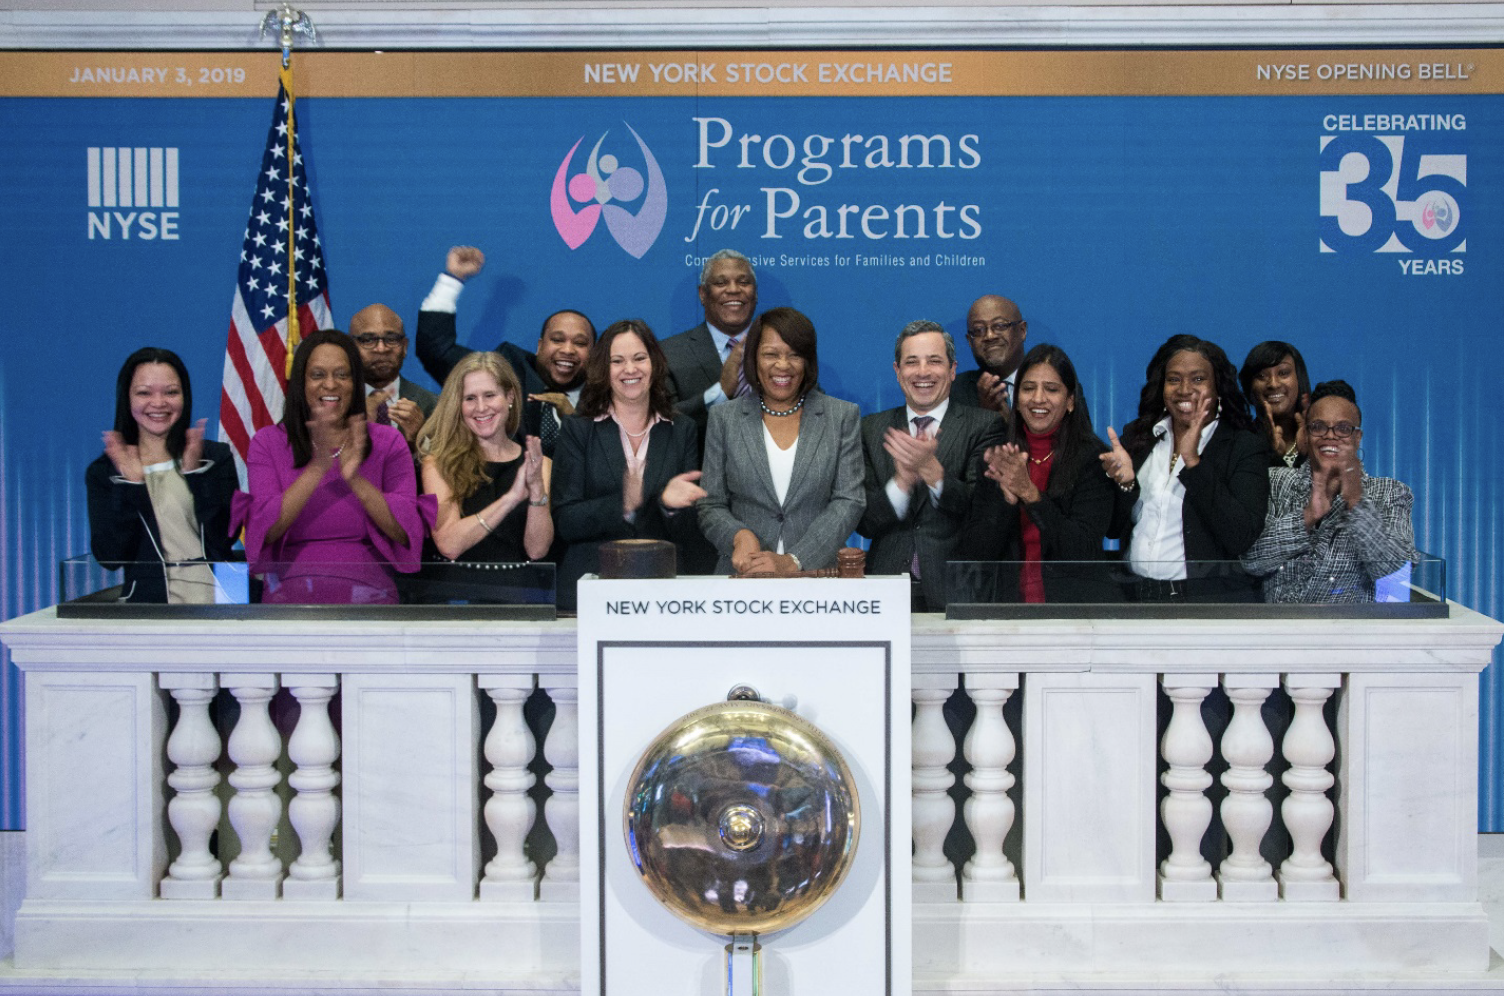 Programs for Parents at the NYSE